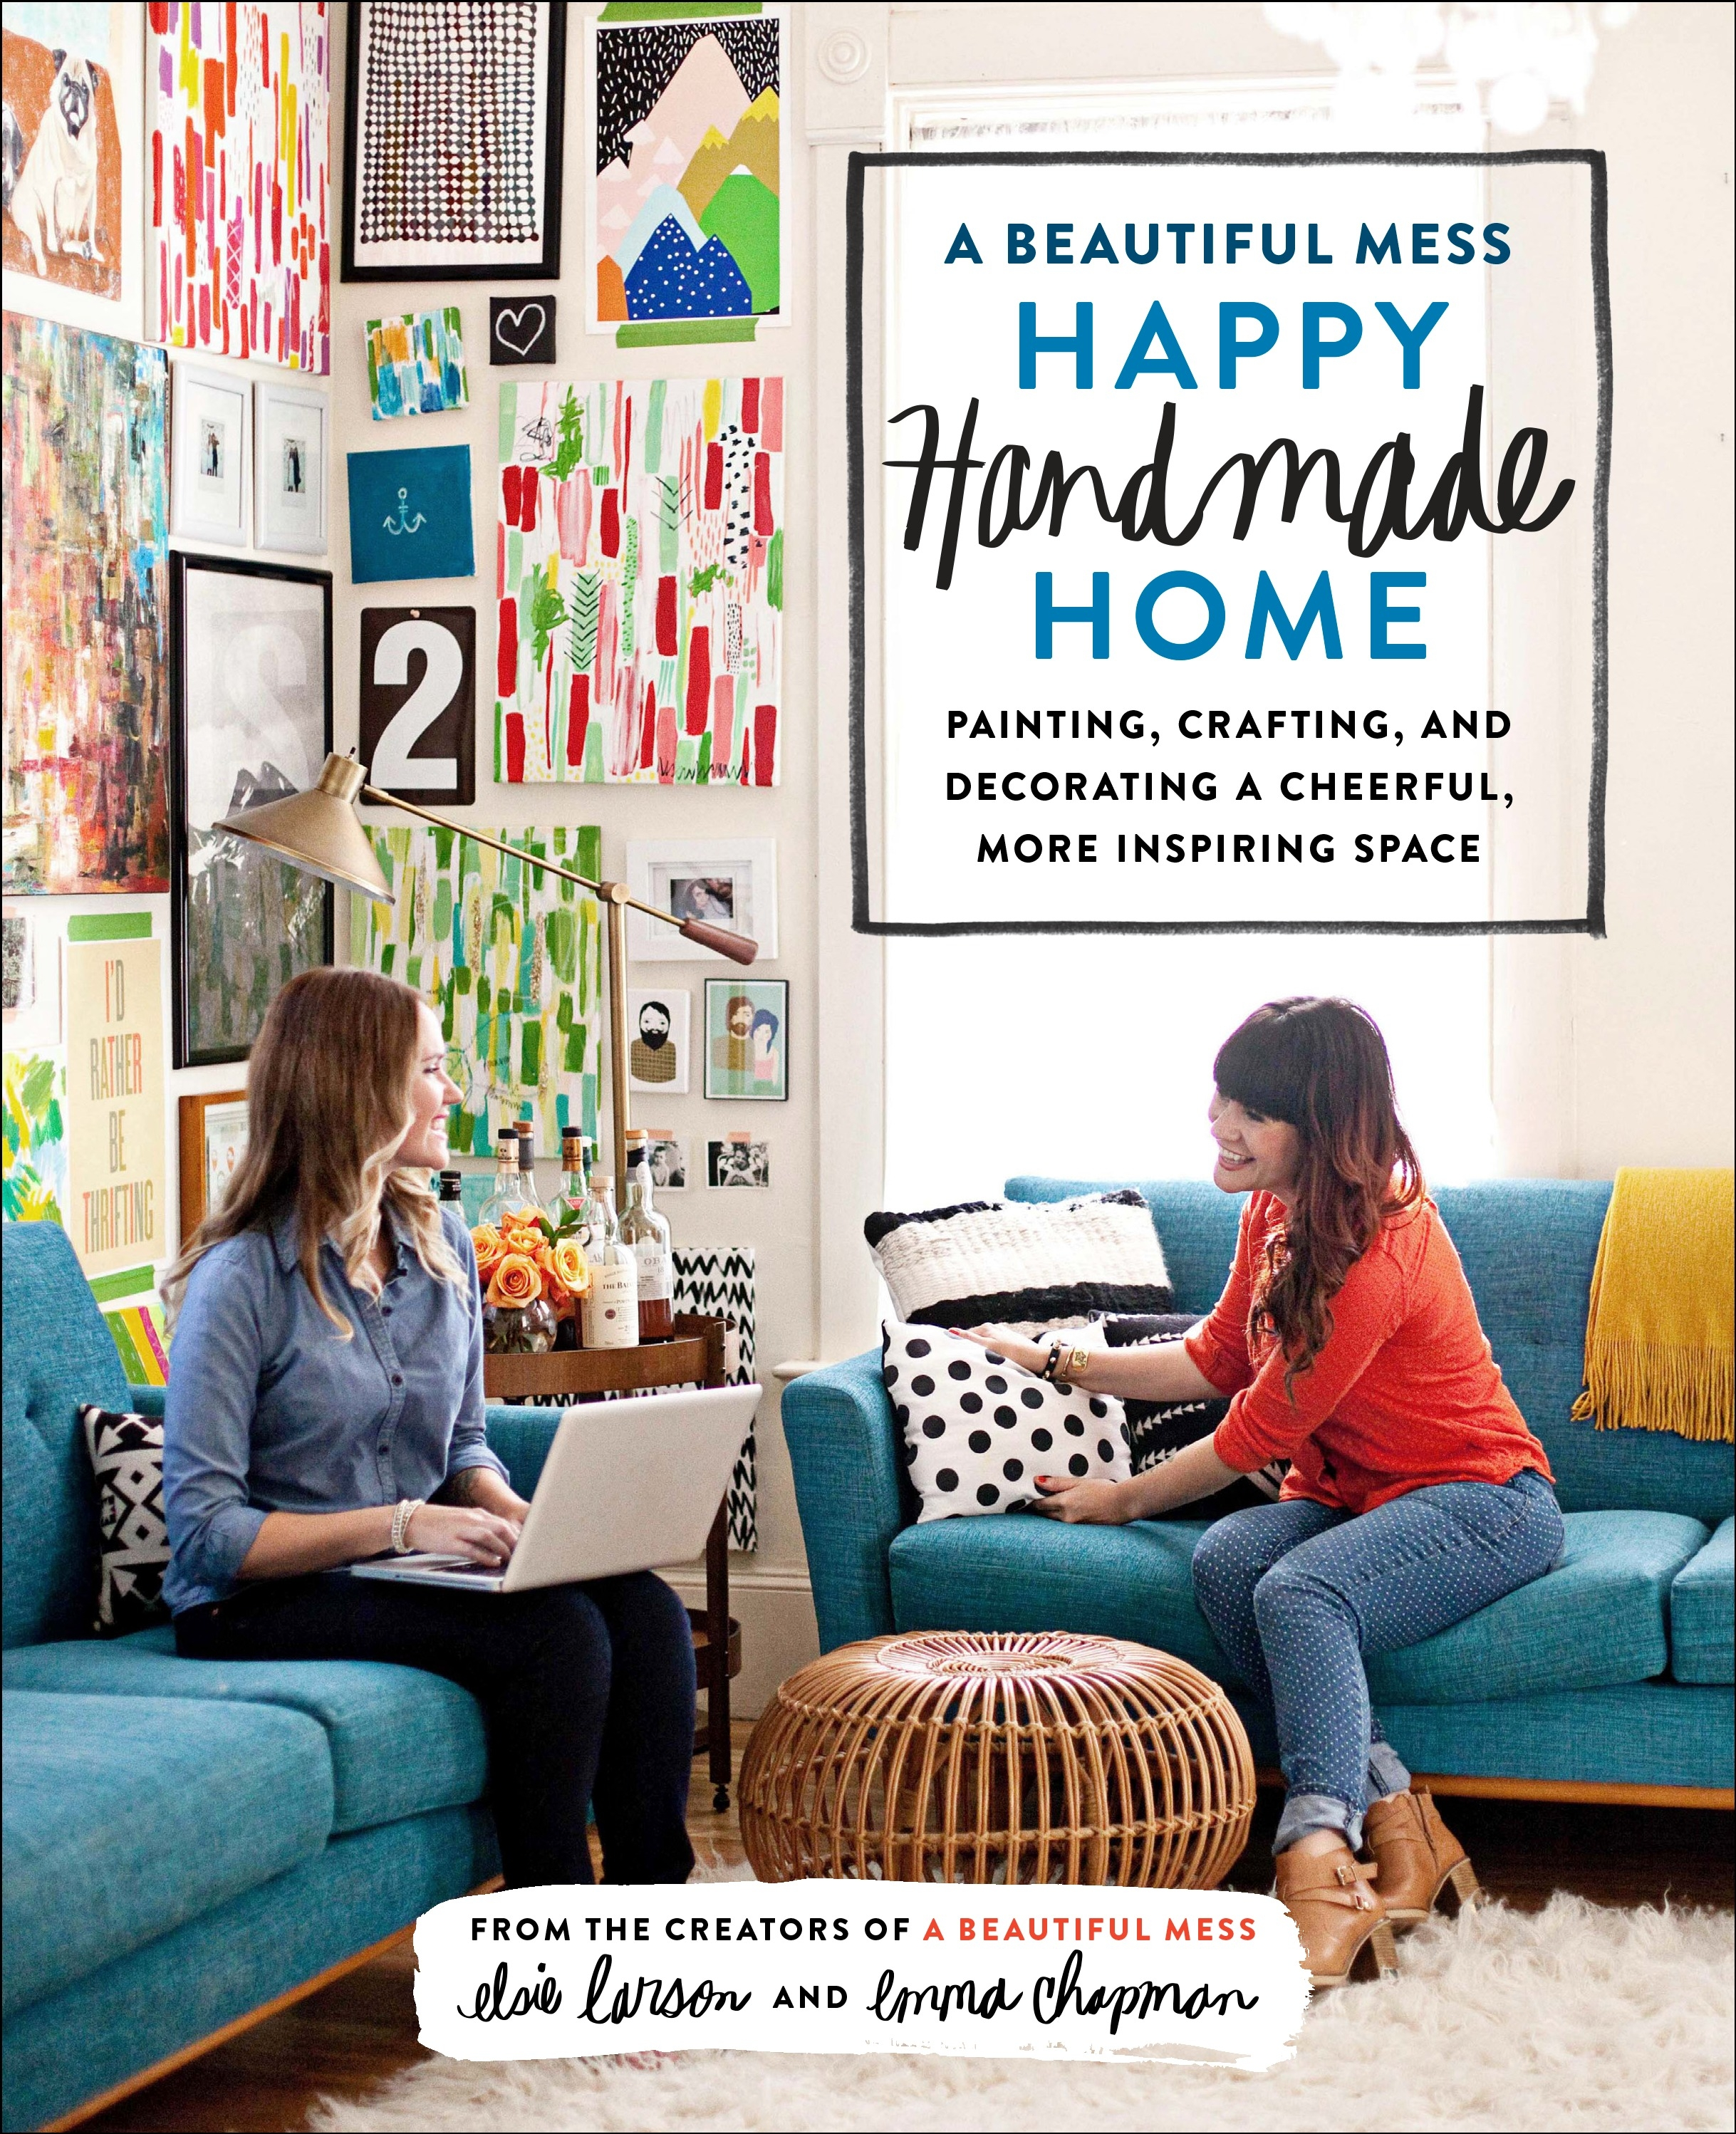 A Beautiful Mess Happy Handmade Home: A Room-by-Room Guide to Painting, Crafting, and Decorating a Cheerful, More Inspiring Space